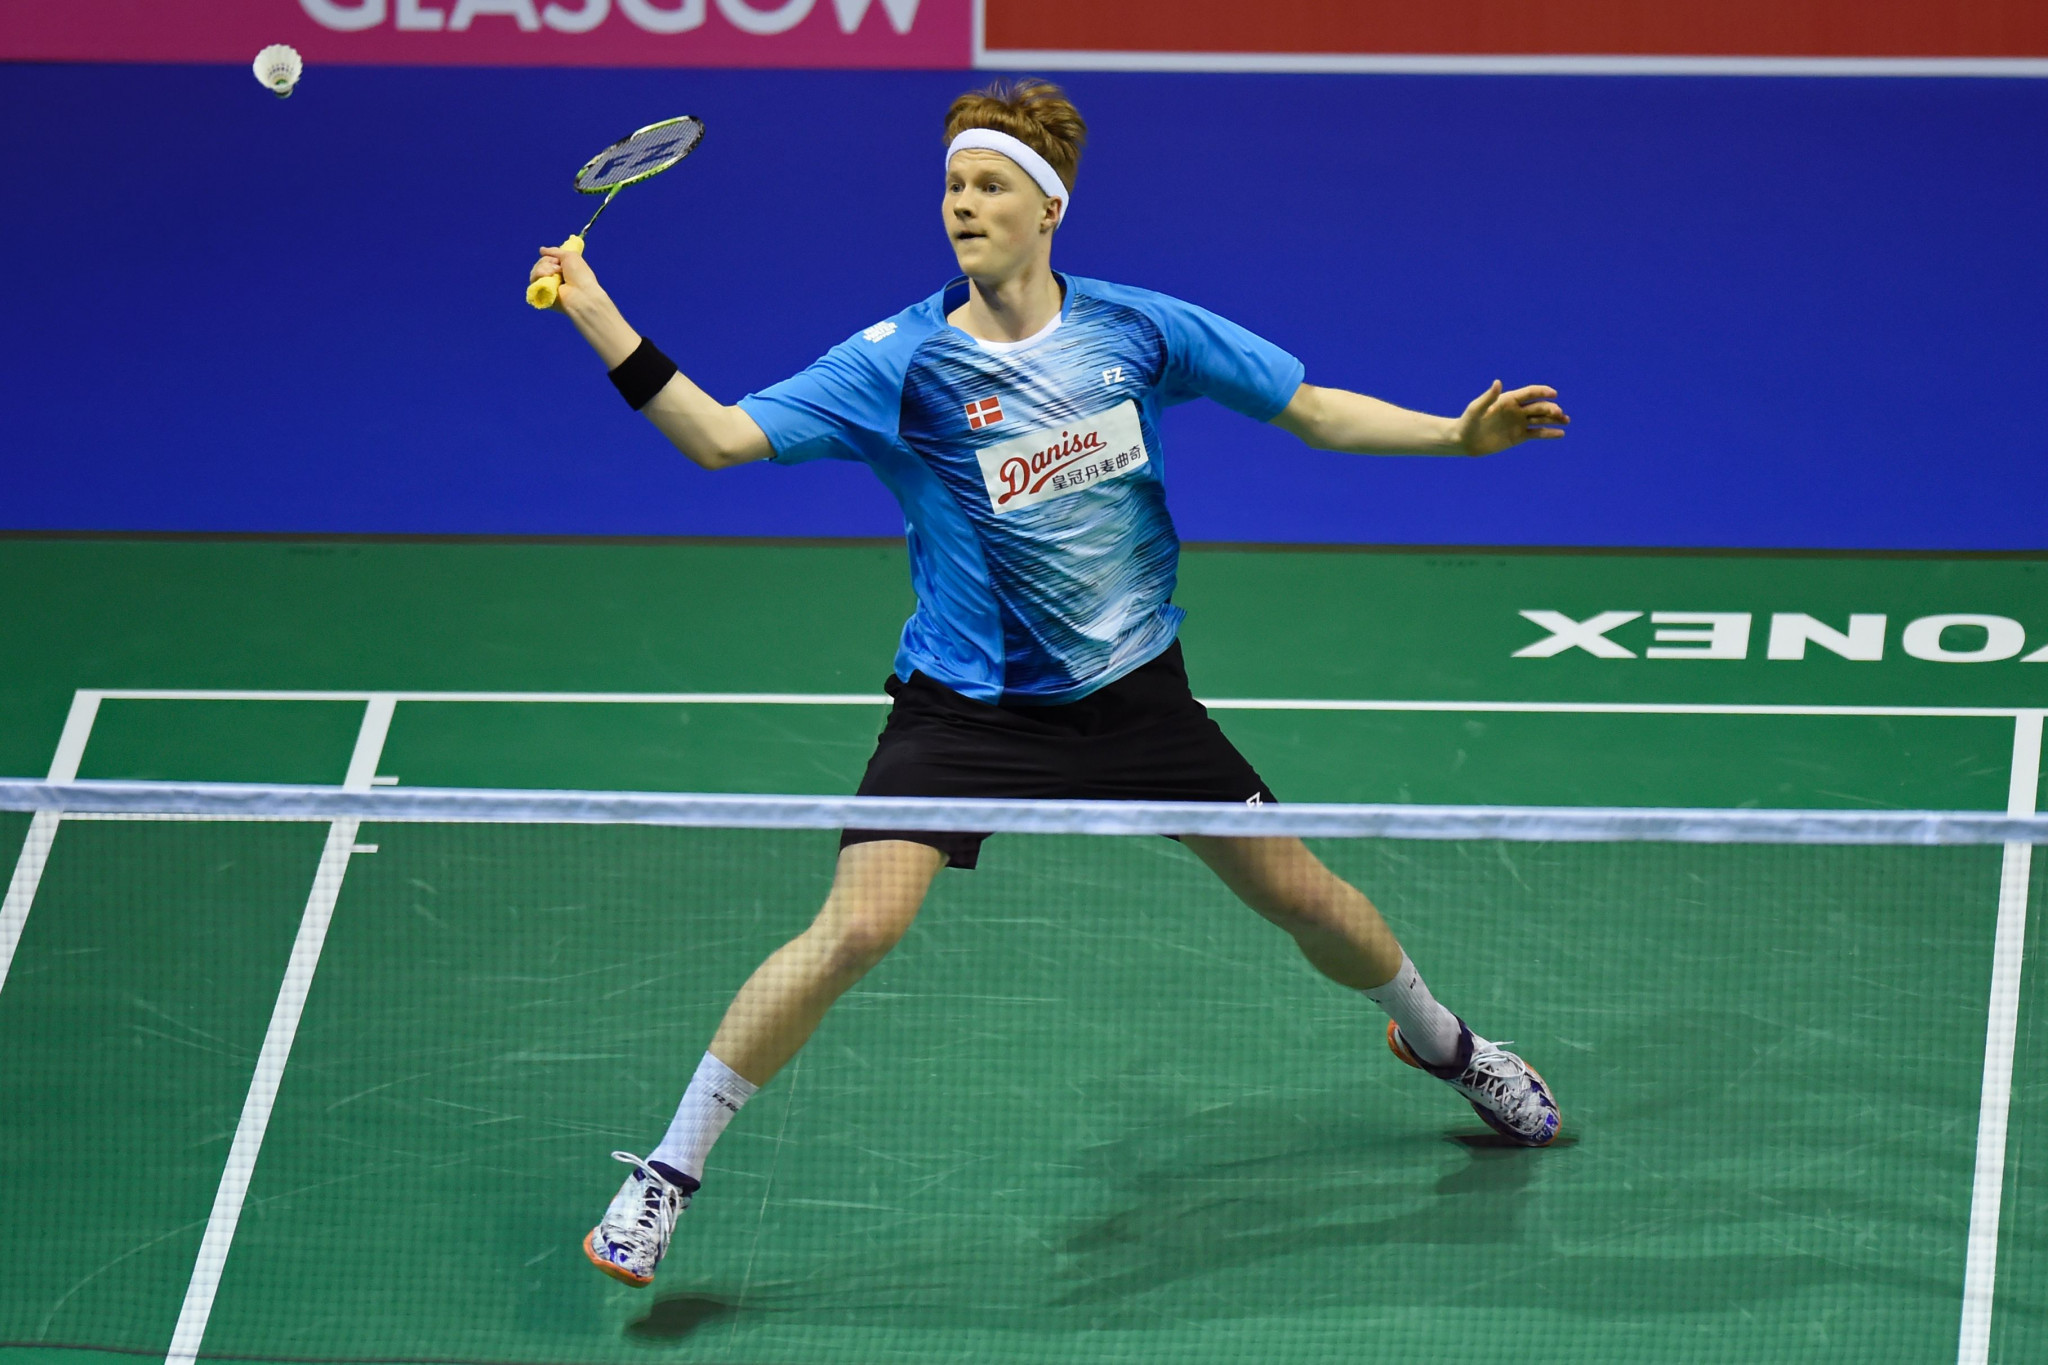 Antonsen aims to justify top seeding at BWF Bitburger Open